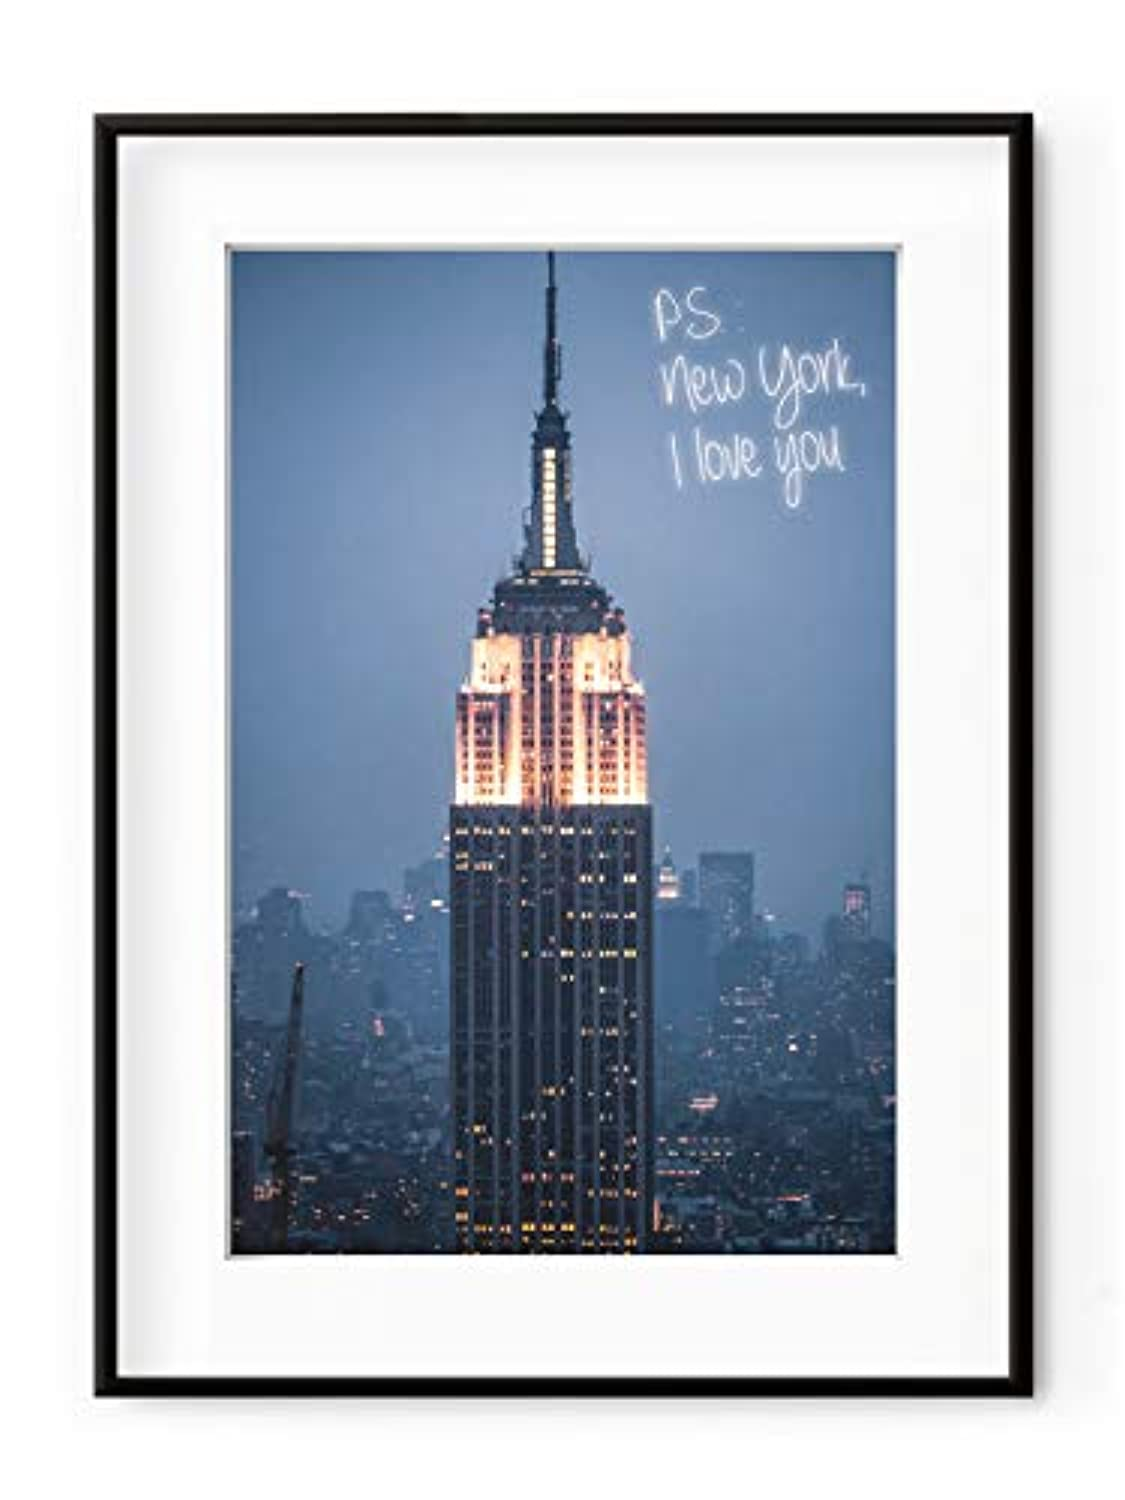 PS: New York I Love You, White Lacquer Wooden Frame, with Mount, Multicolored, 30x40